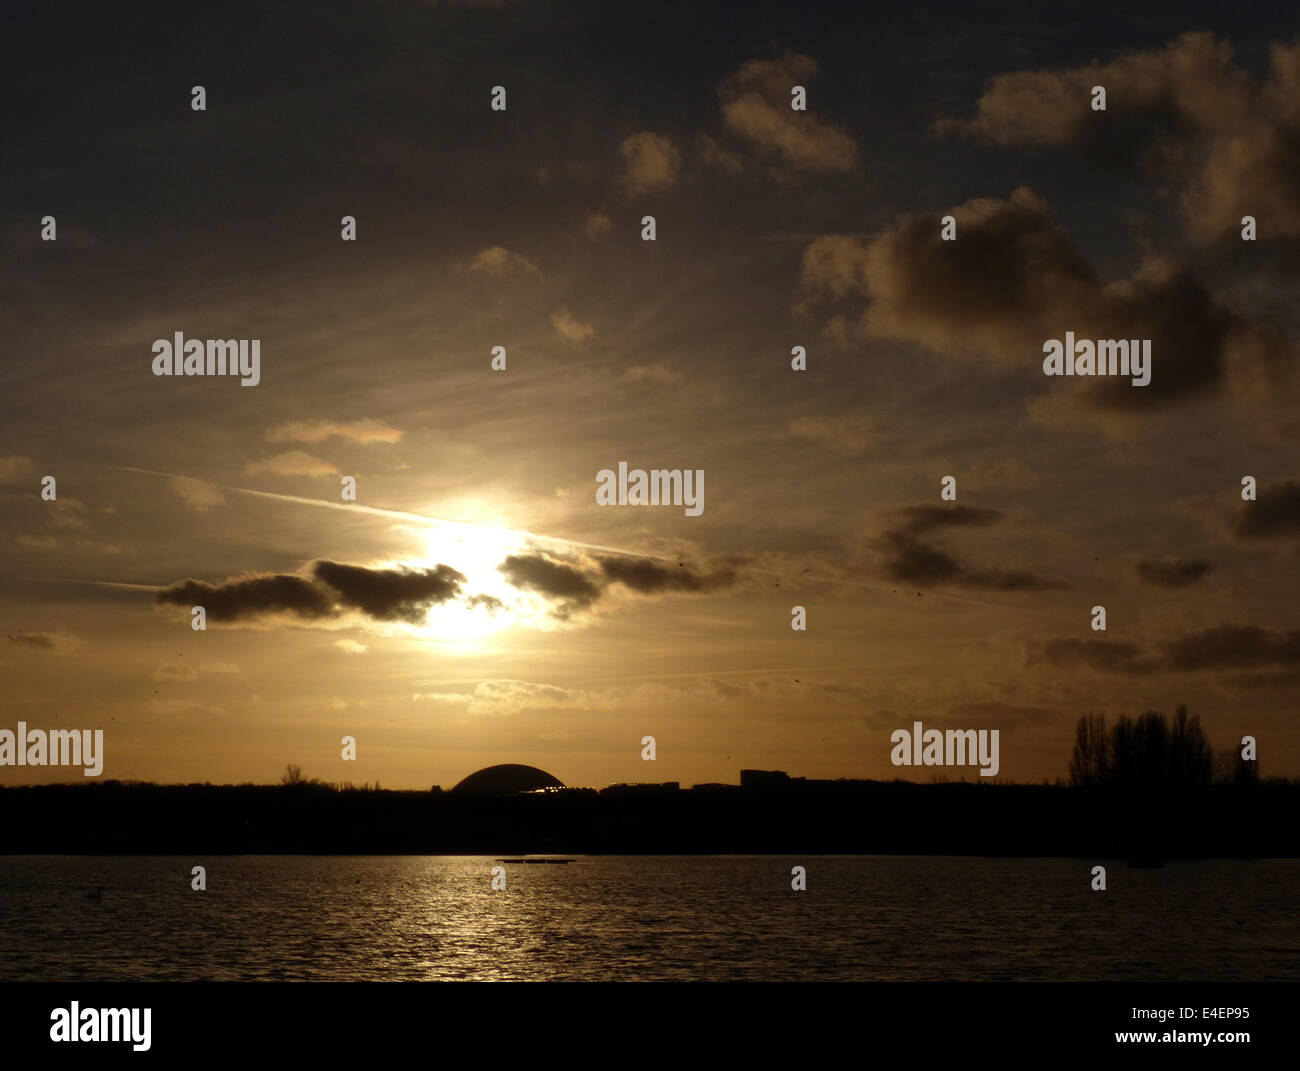 A sunset over Willen Lake in Milton Keynes with Xscape silhouetted - Stock Image